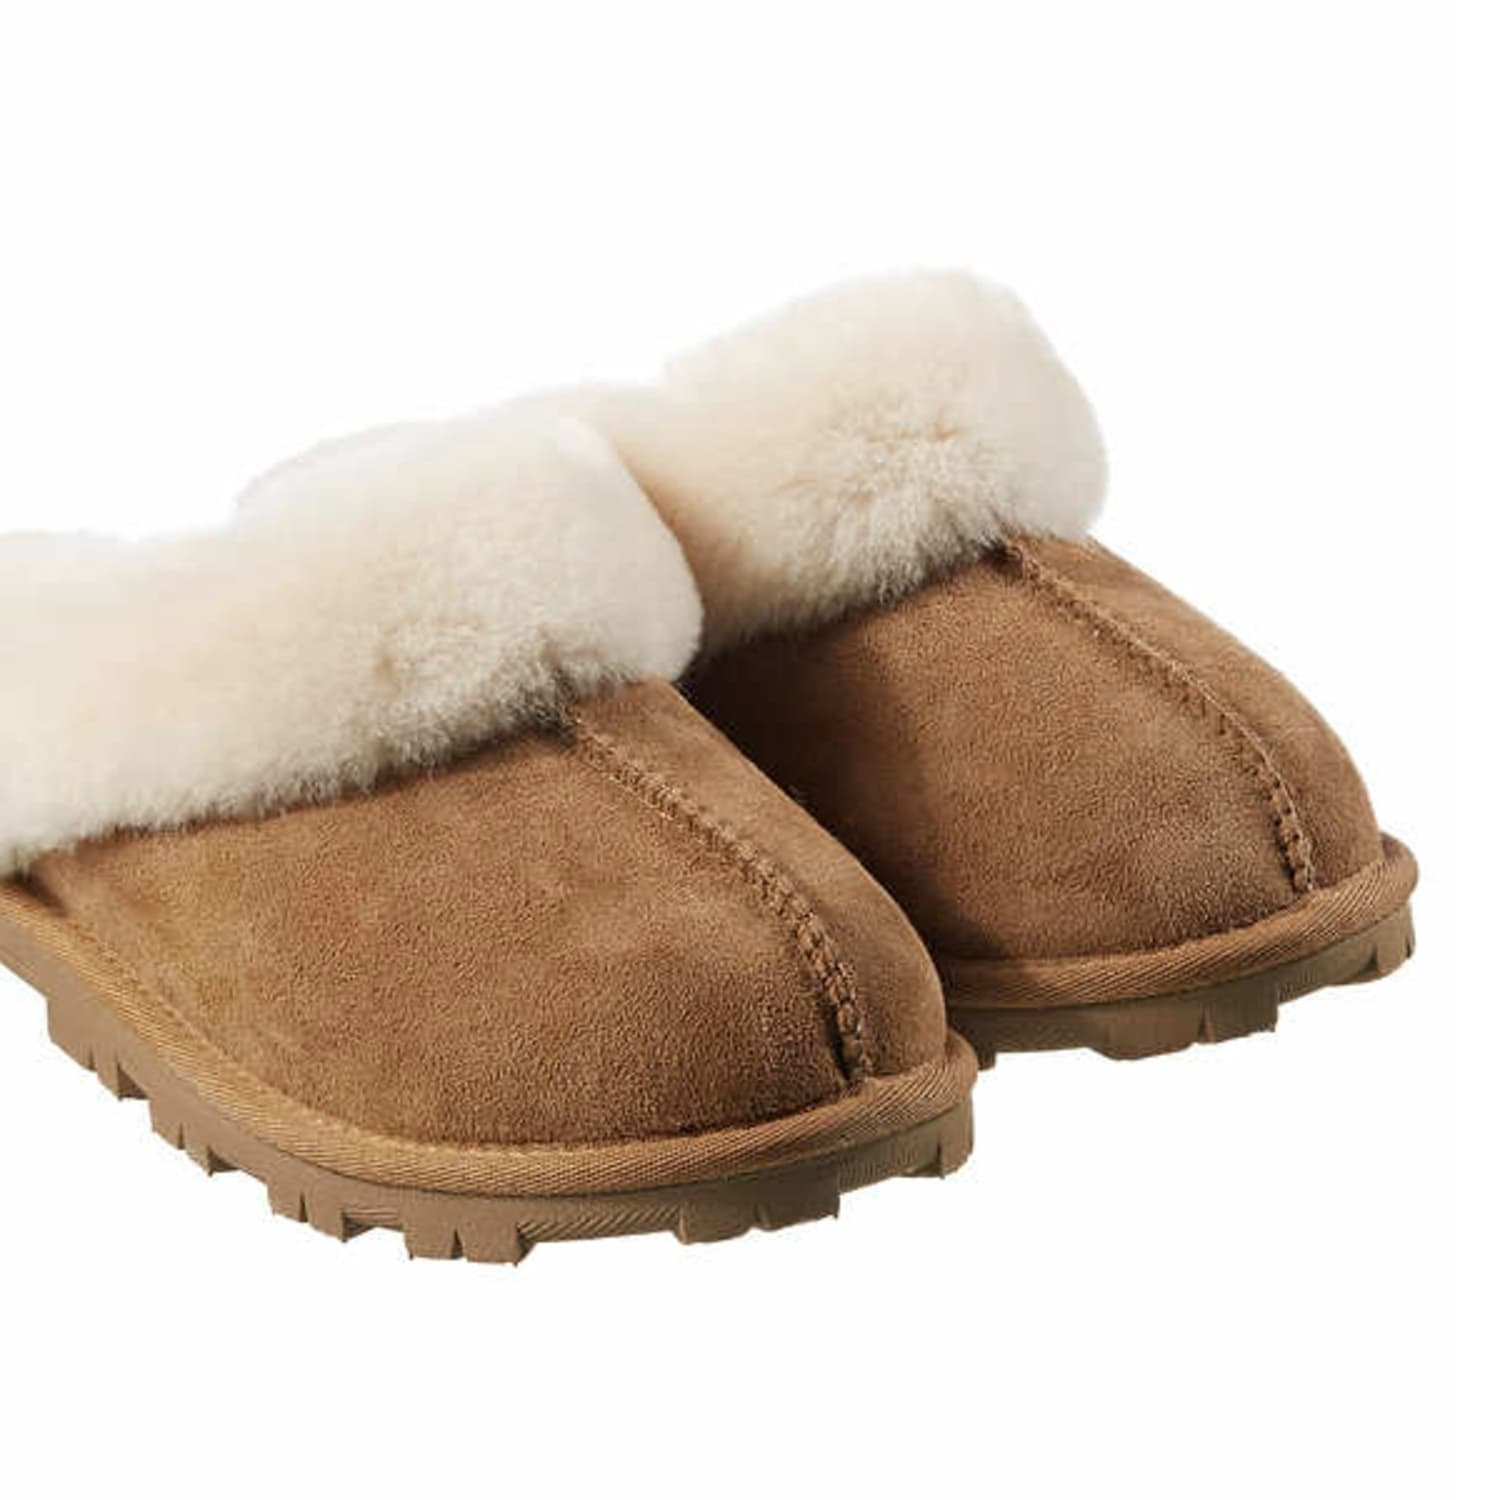 new products c944c 21cd9 Costco Shoppers Love These $20 Slippers That Are A UGG Dupe ...